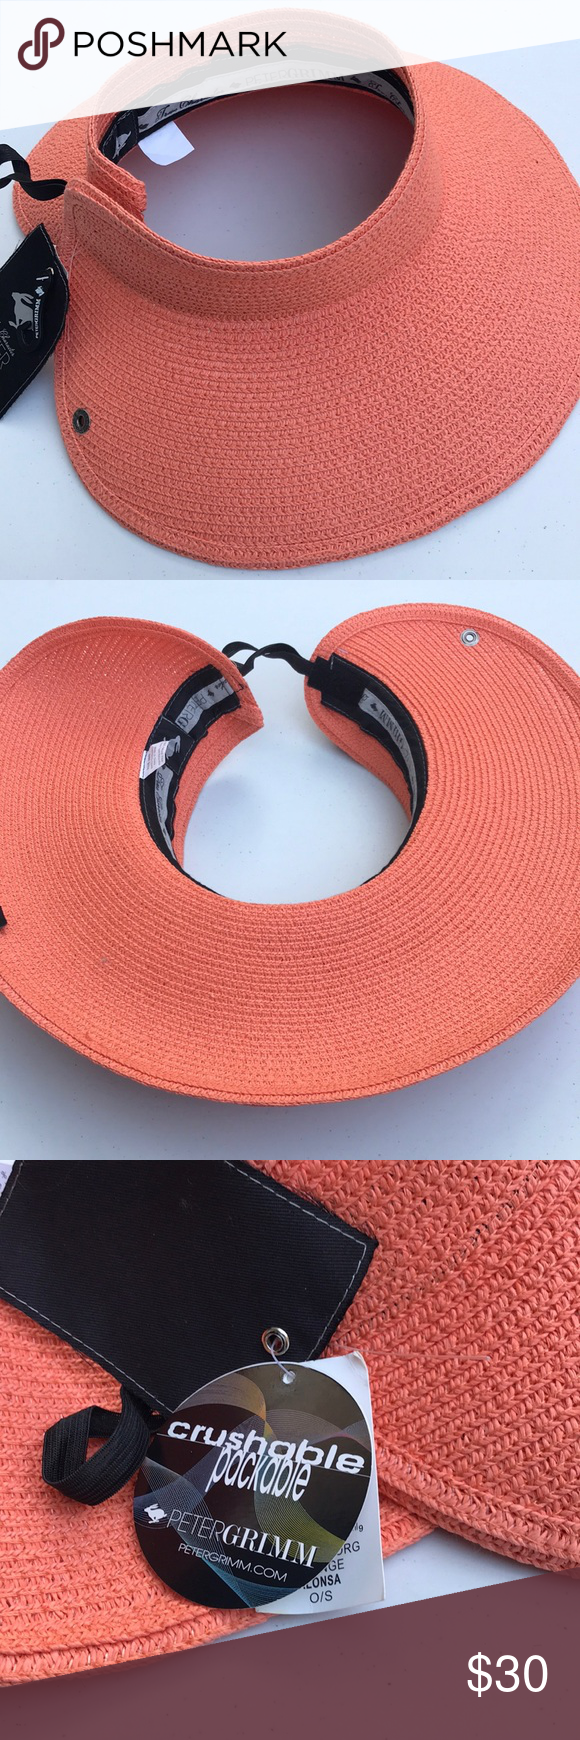 545a26751657e Peter Grimm Foldable Packable Straw Visor New with tags Orange straw visor  Peter Grimm Accessories Hats